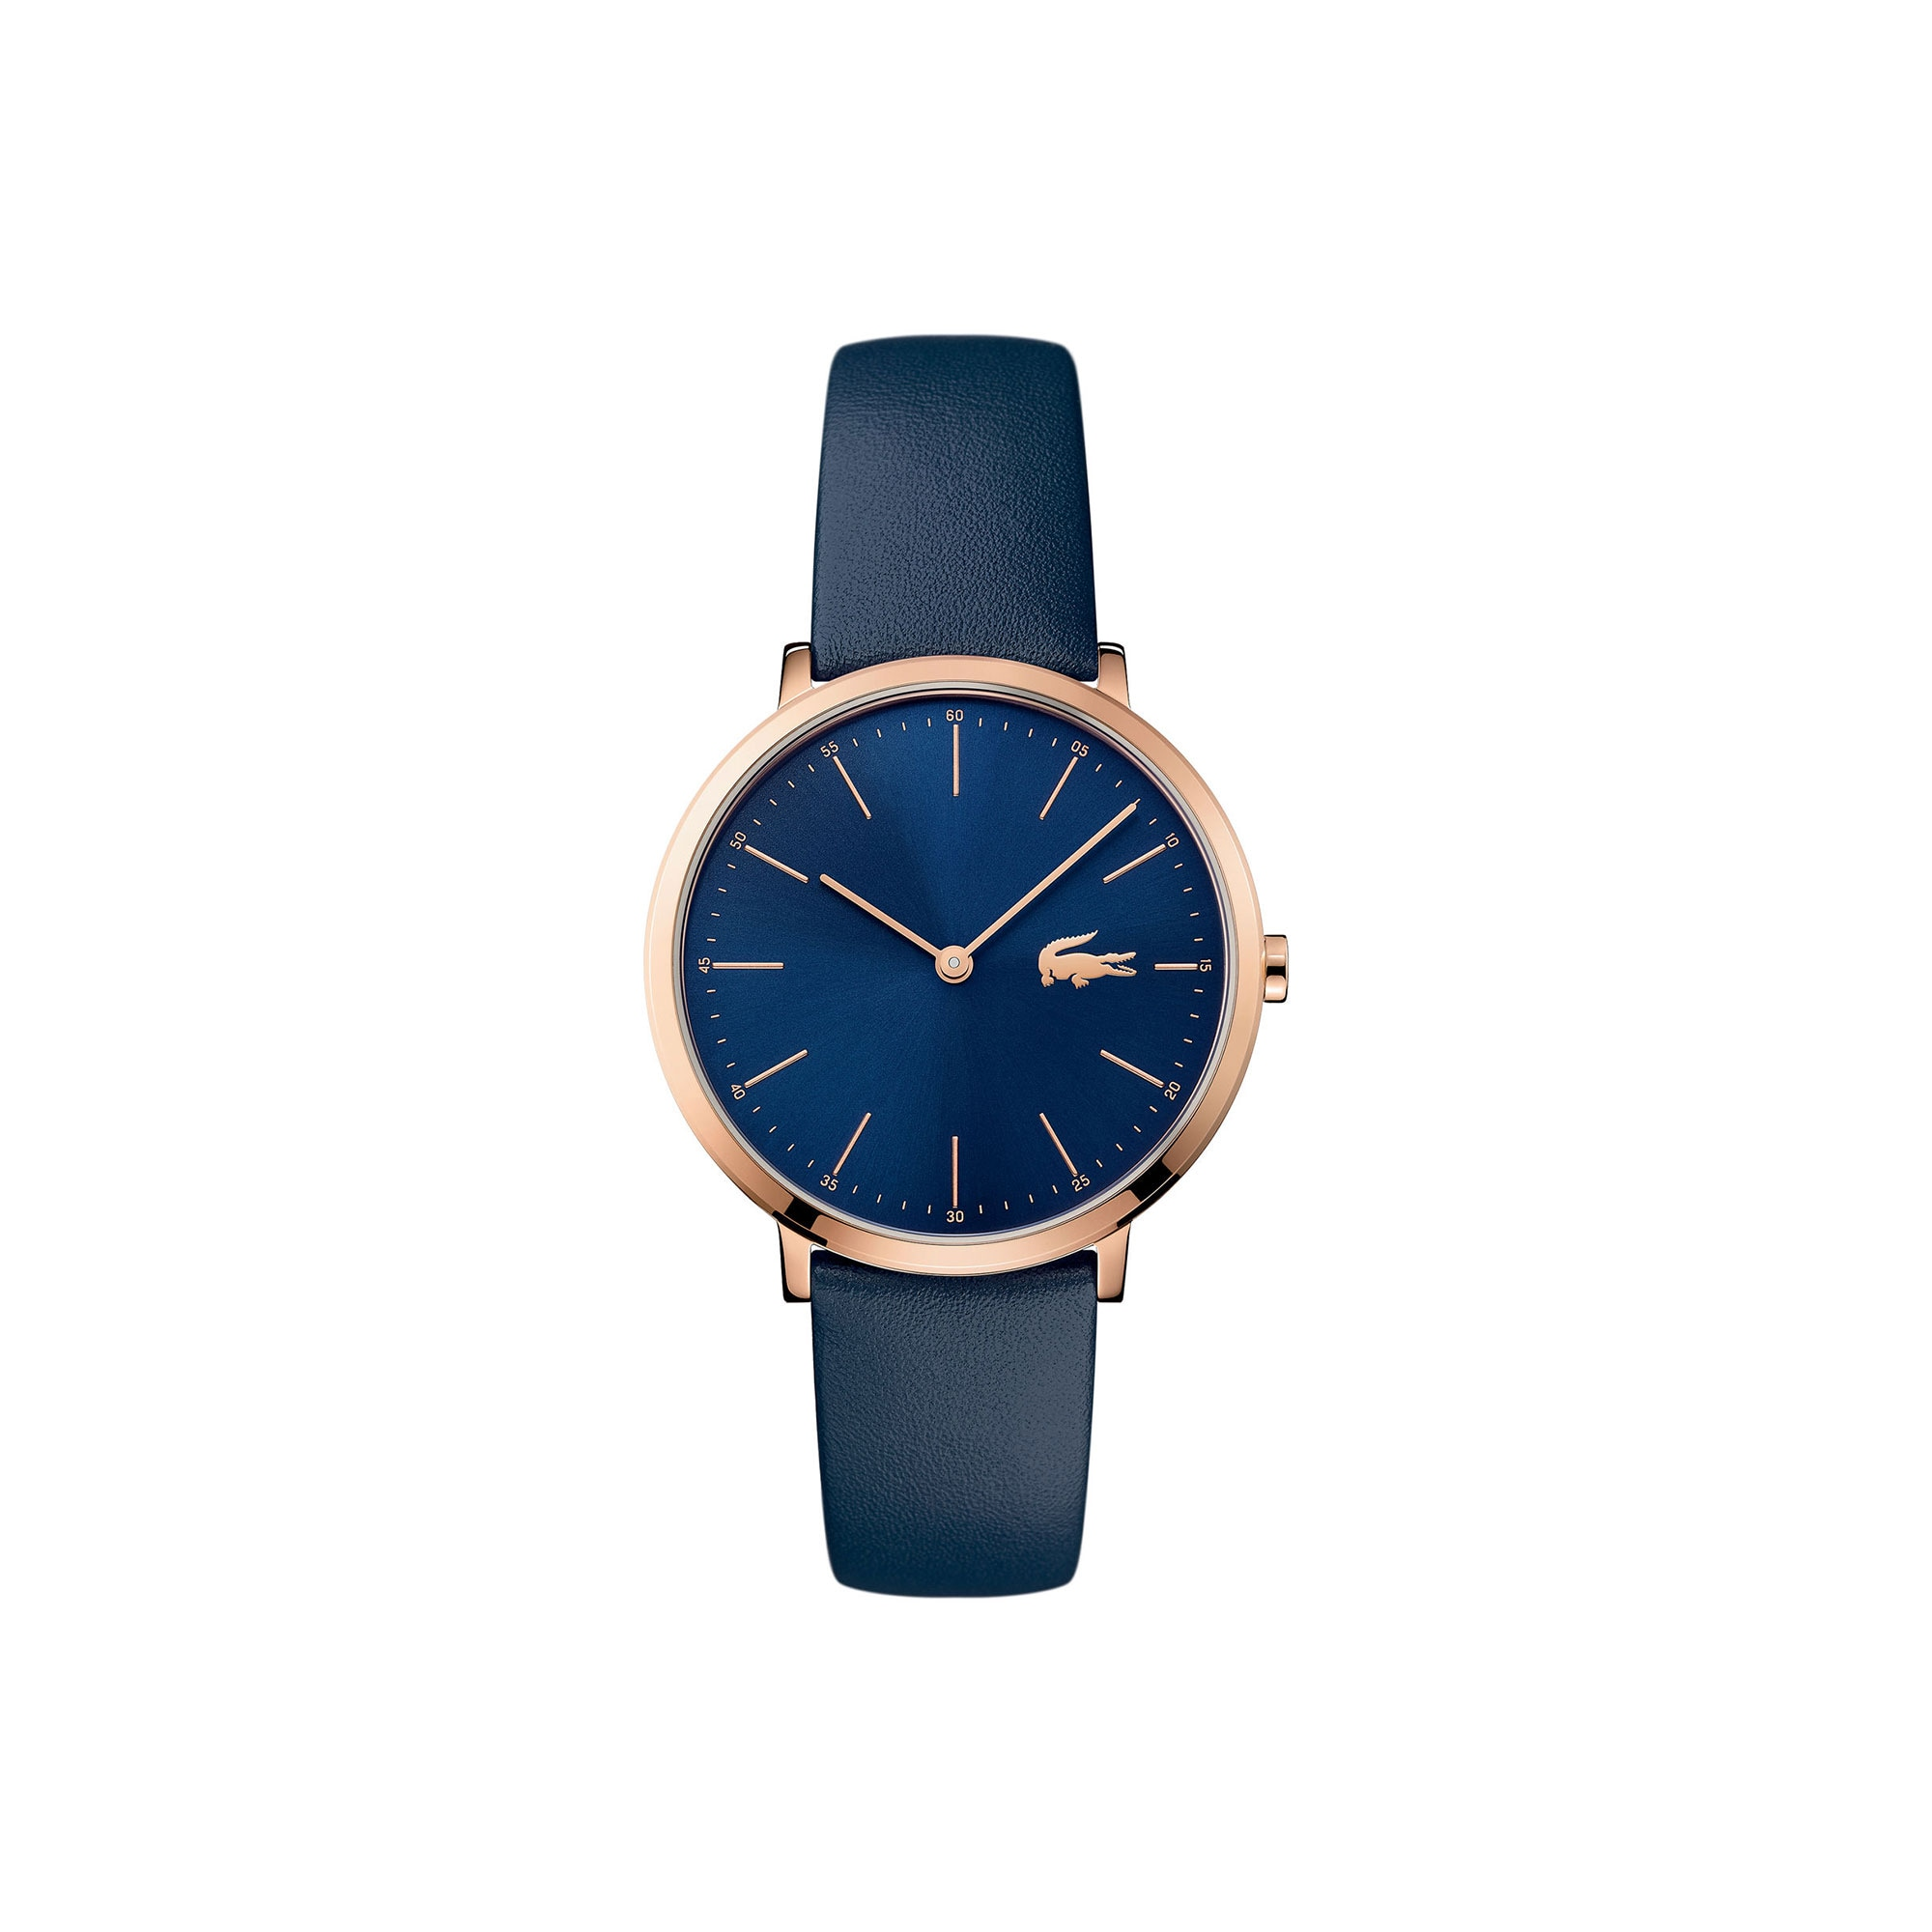 Women's Moon Watch with Blue Leather Strap